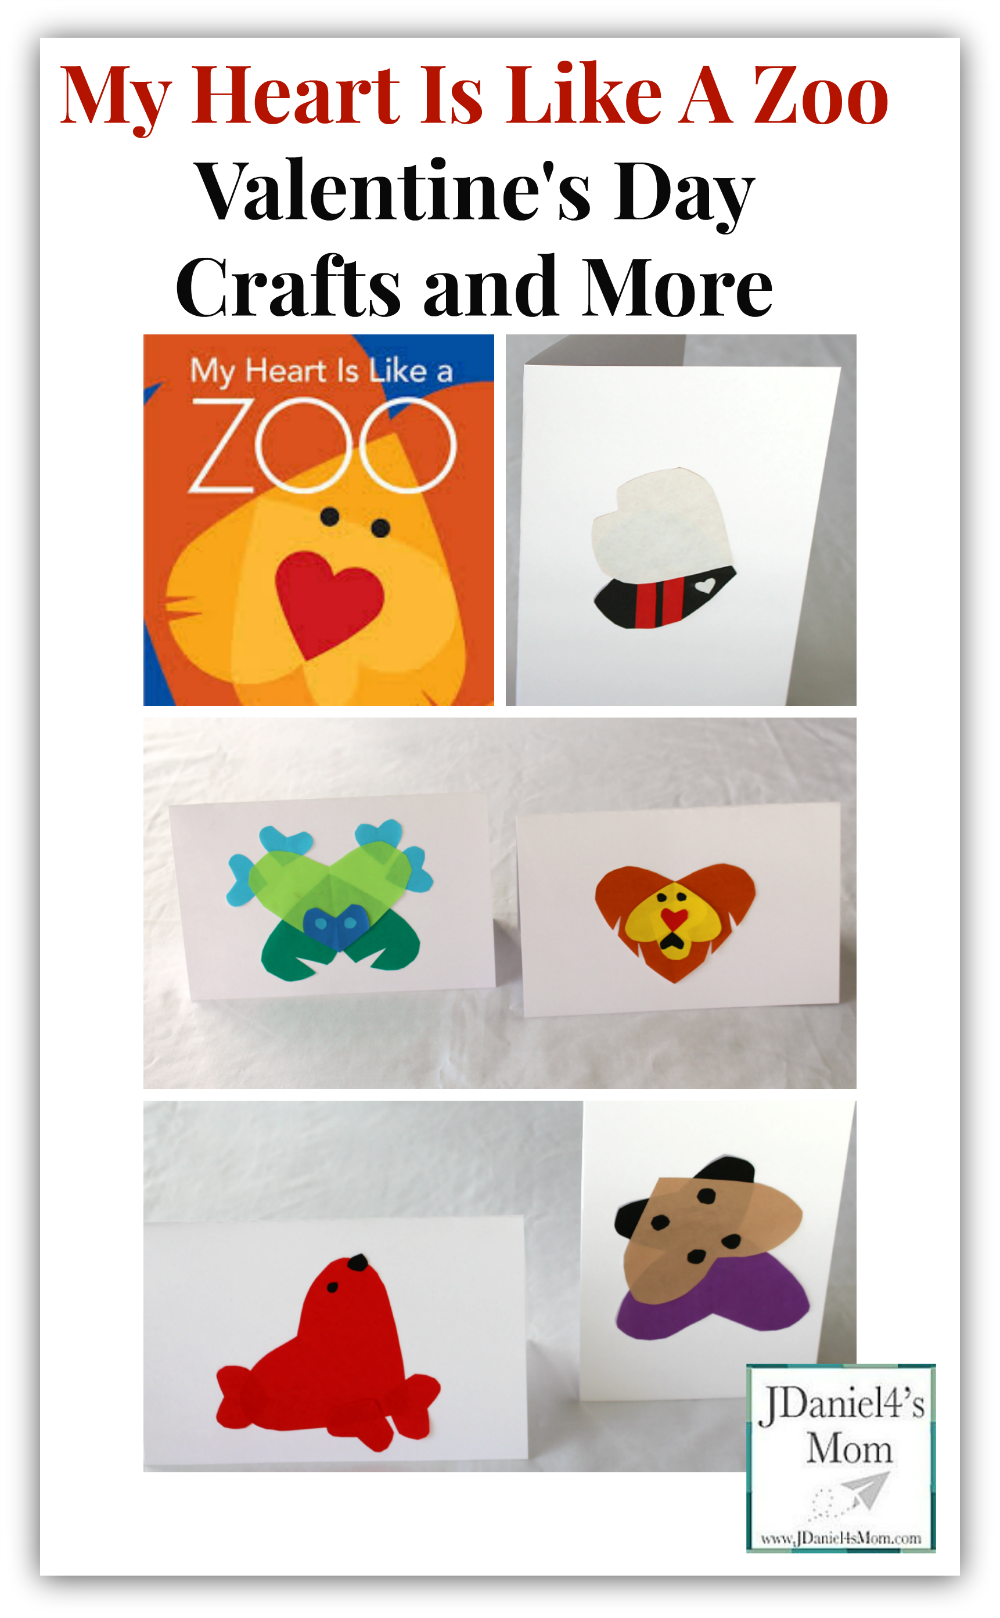 My Heart is Like a Zoo Valentine Day Crafts and More